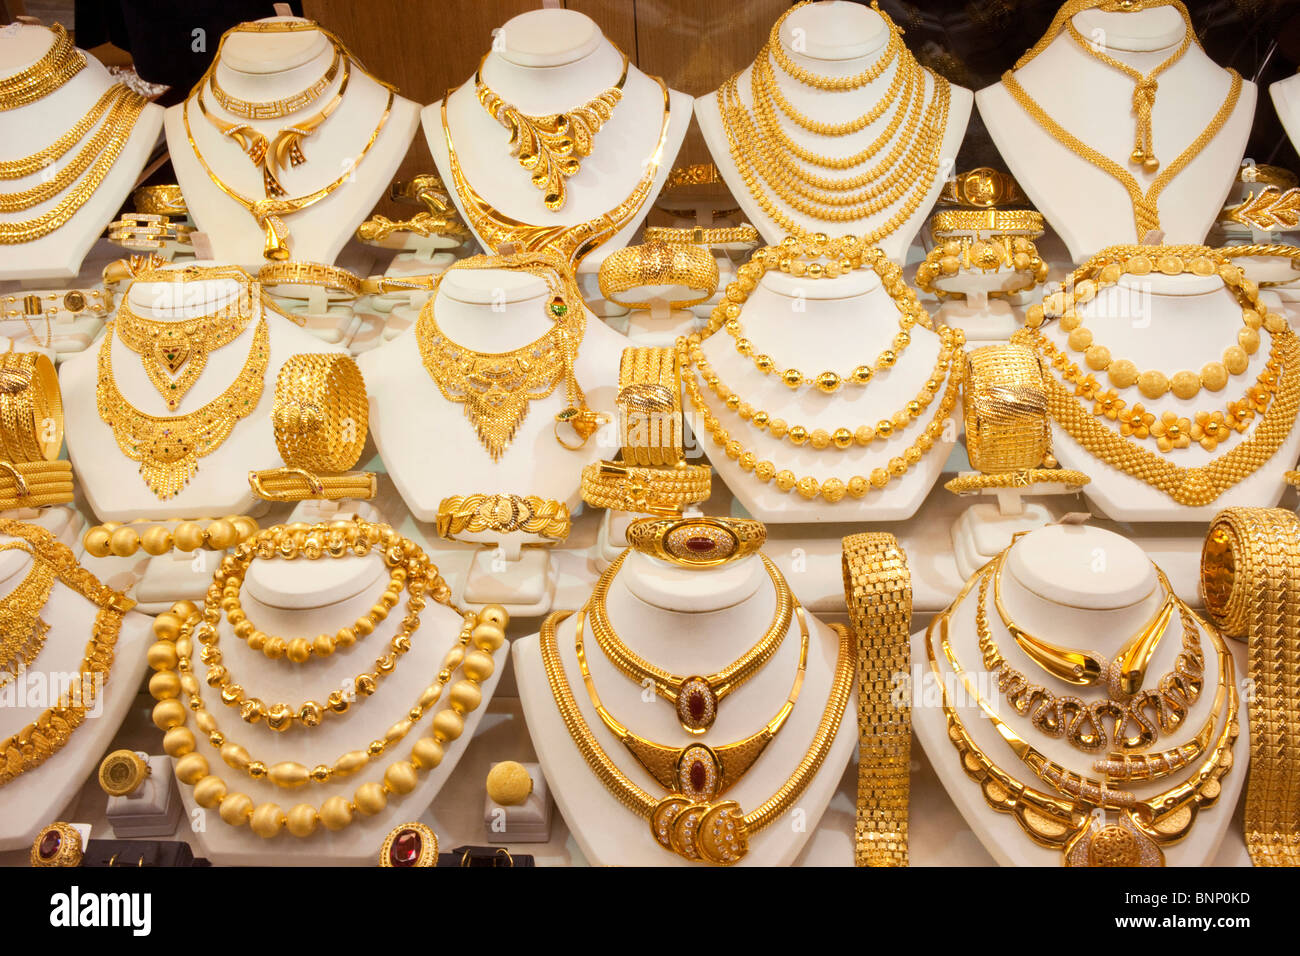 Turkish Gold Jewellery Stock Photos & Turkish Gold Jewellery Stock